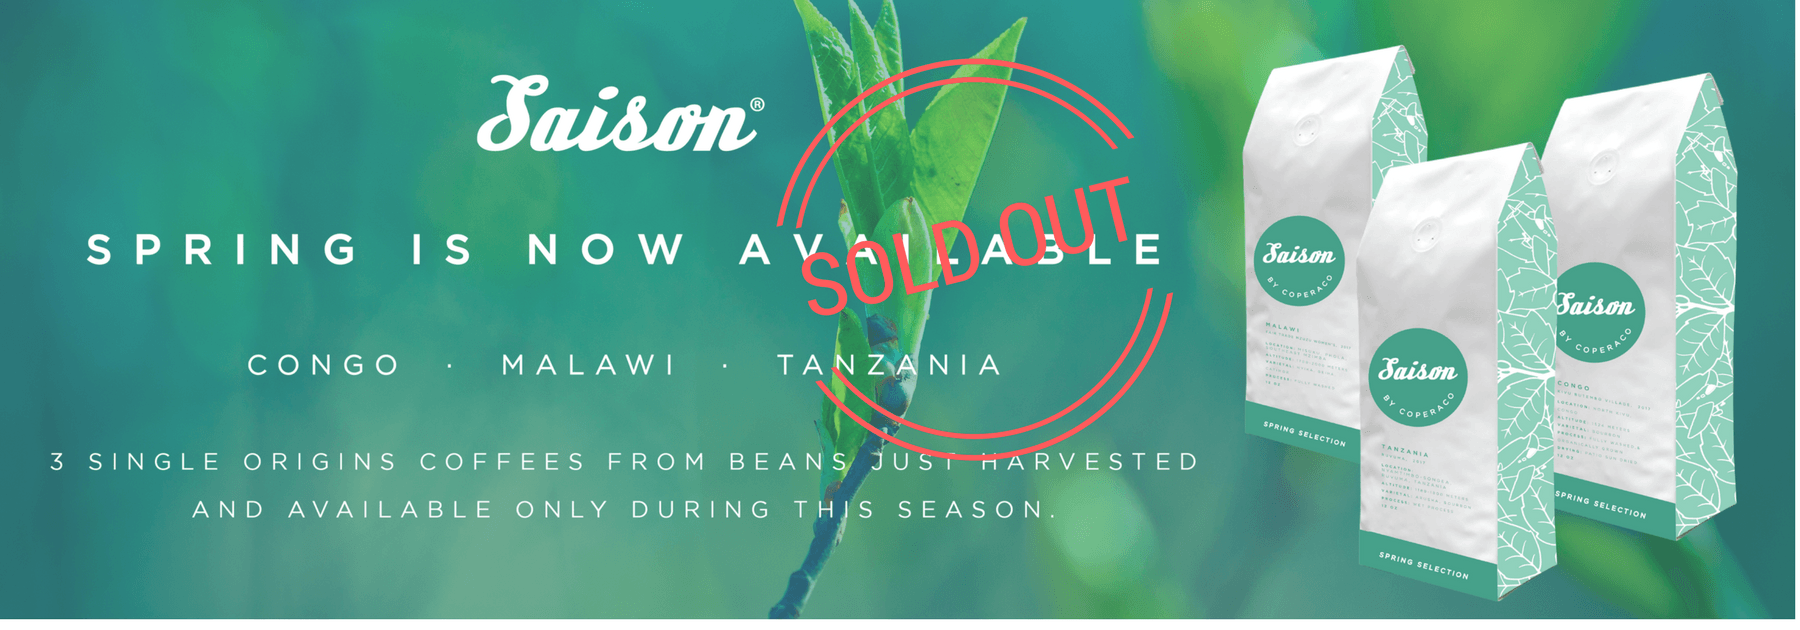 Coperaco seasonal coffees for Spring 2017 are Sold out !